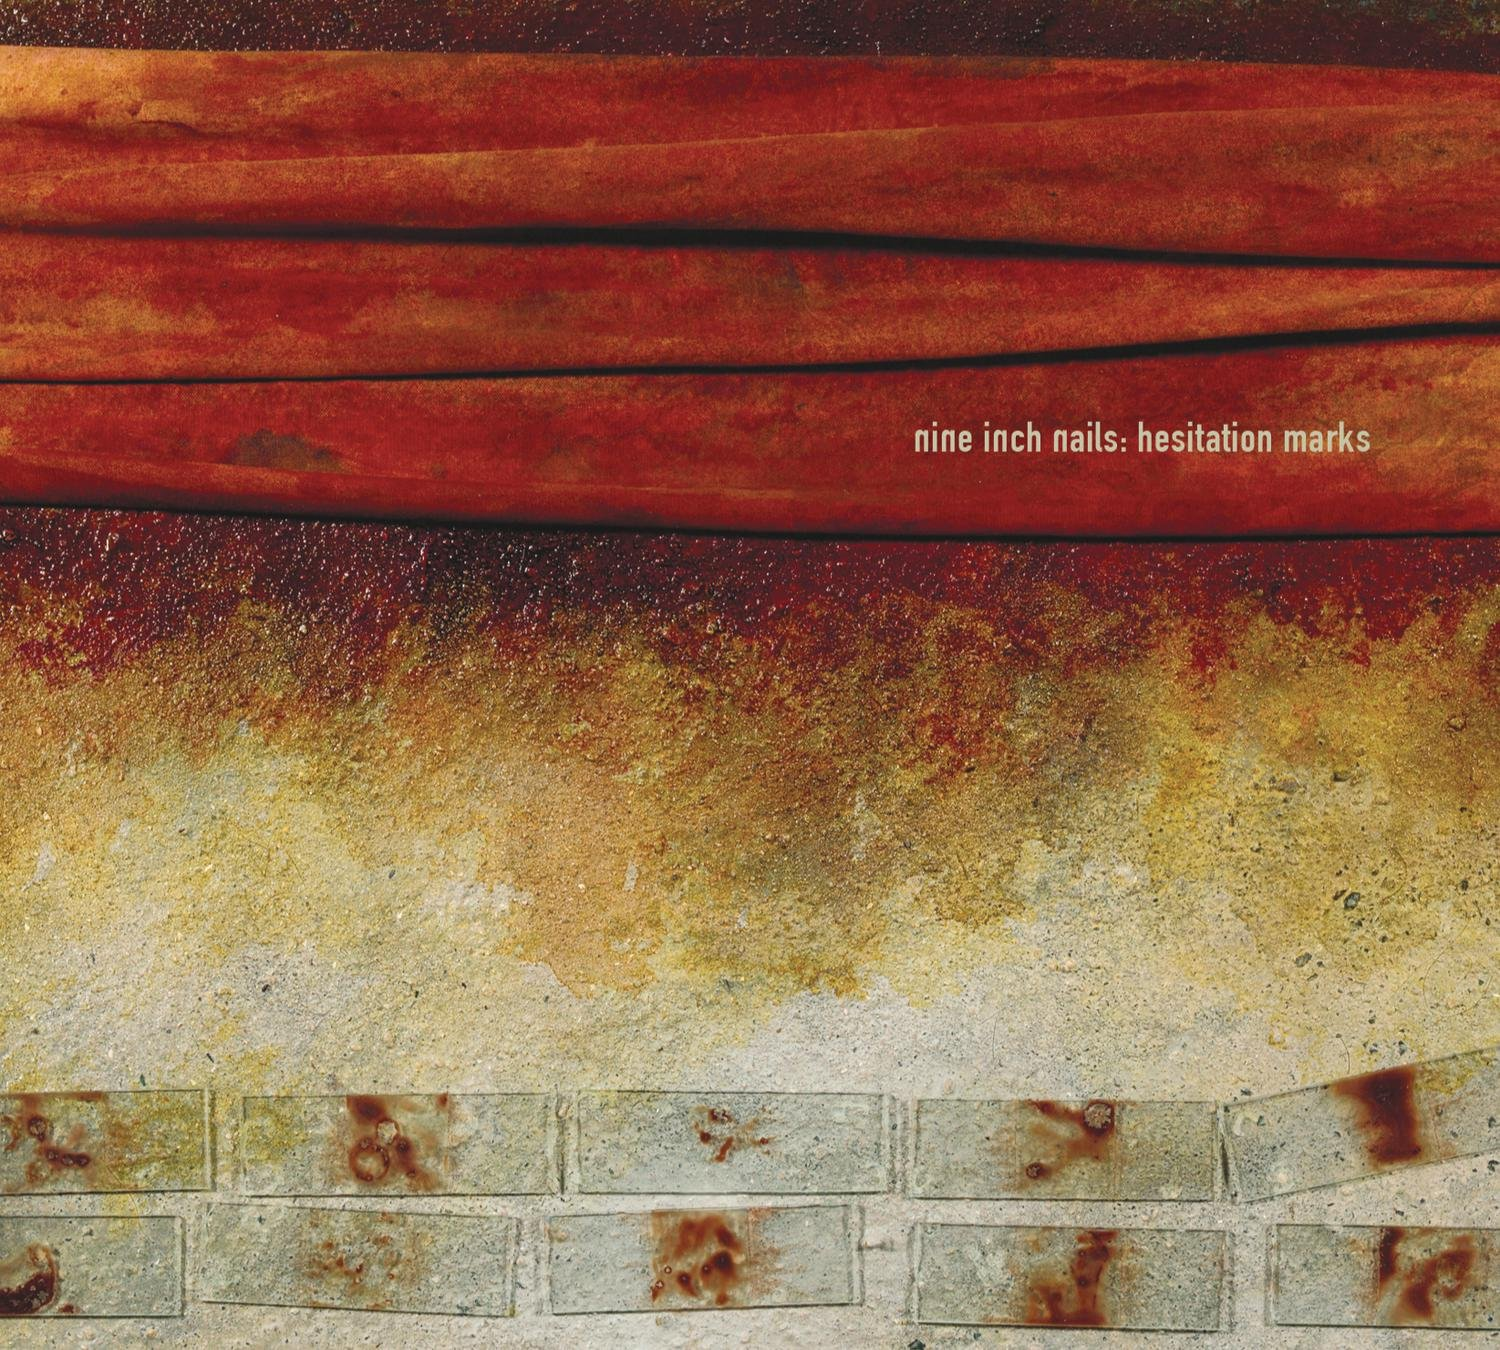 Nine Inch Nails - Hesitation Marks - Amazon.com Music